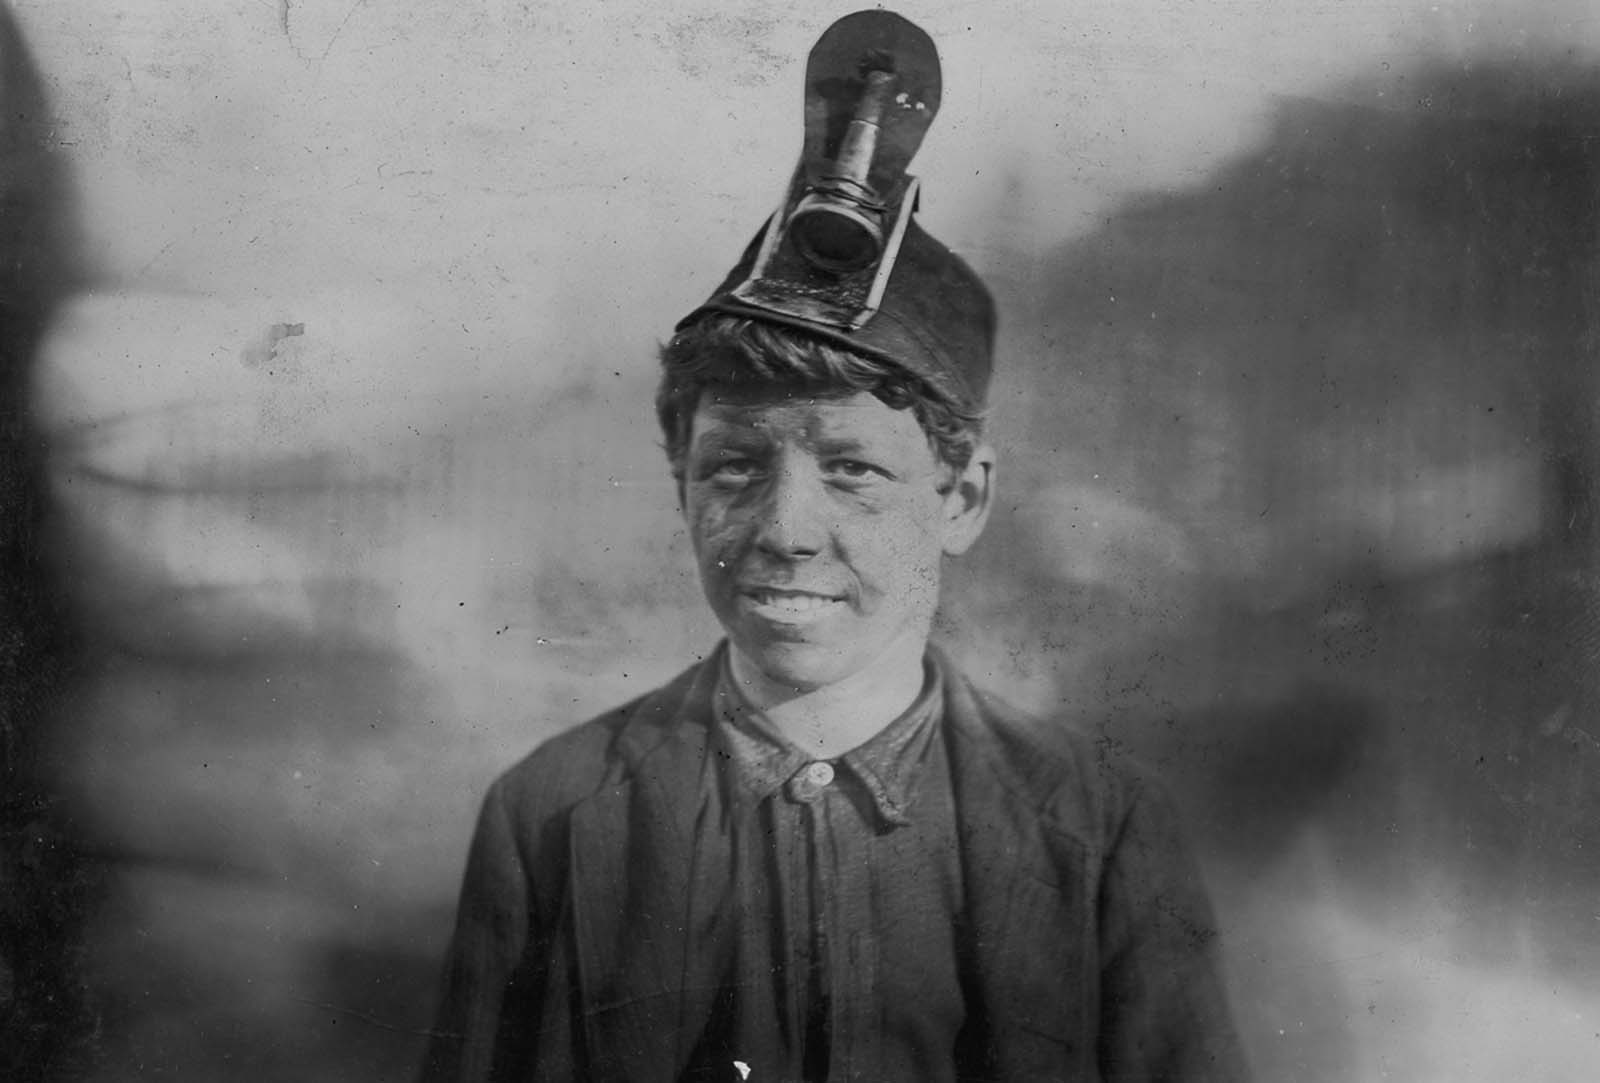 Frank, age 14. He had been working in a mine for three years and had been hospitalized for a year when his leg was crushed by a coal car. 1906.